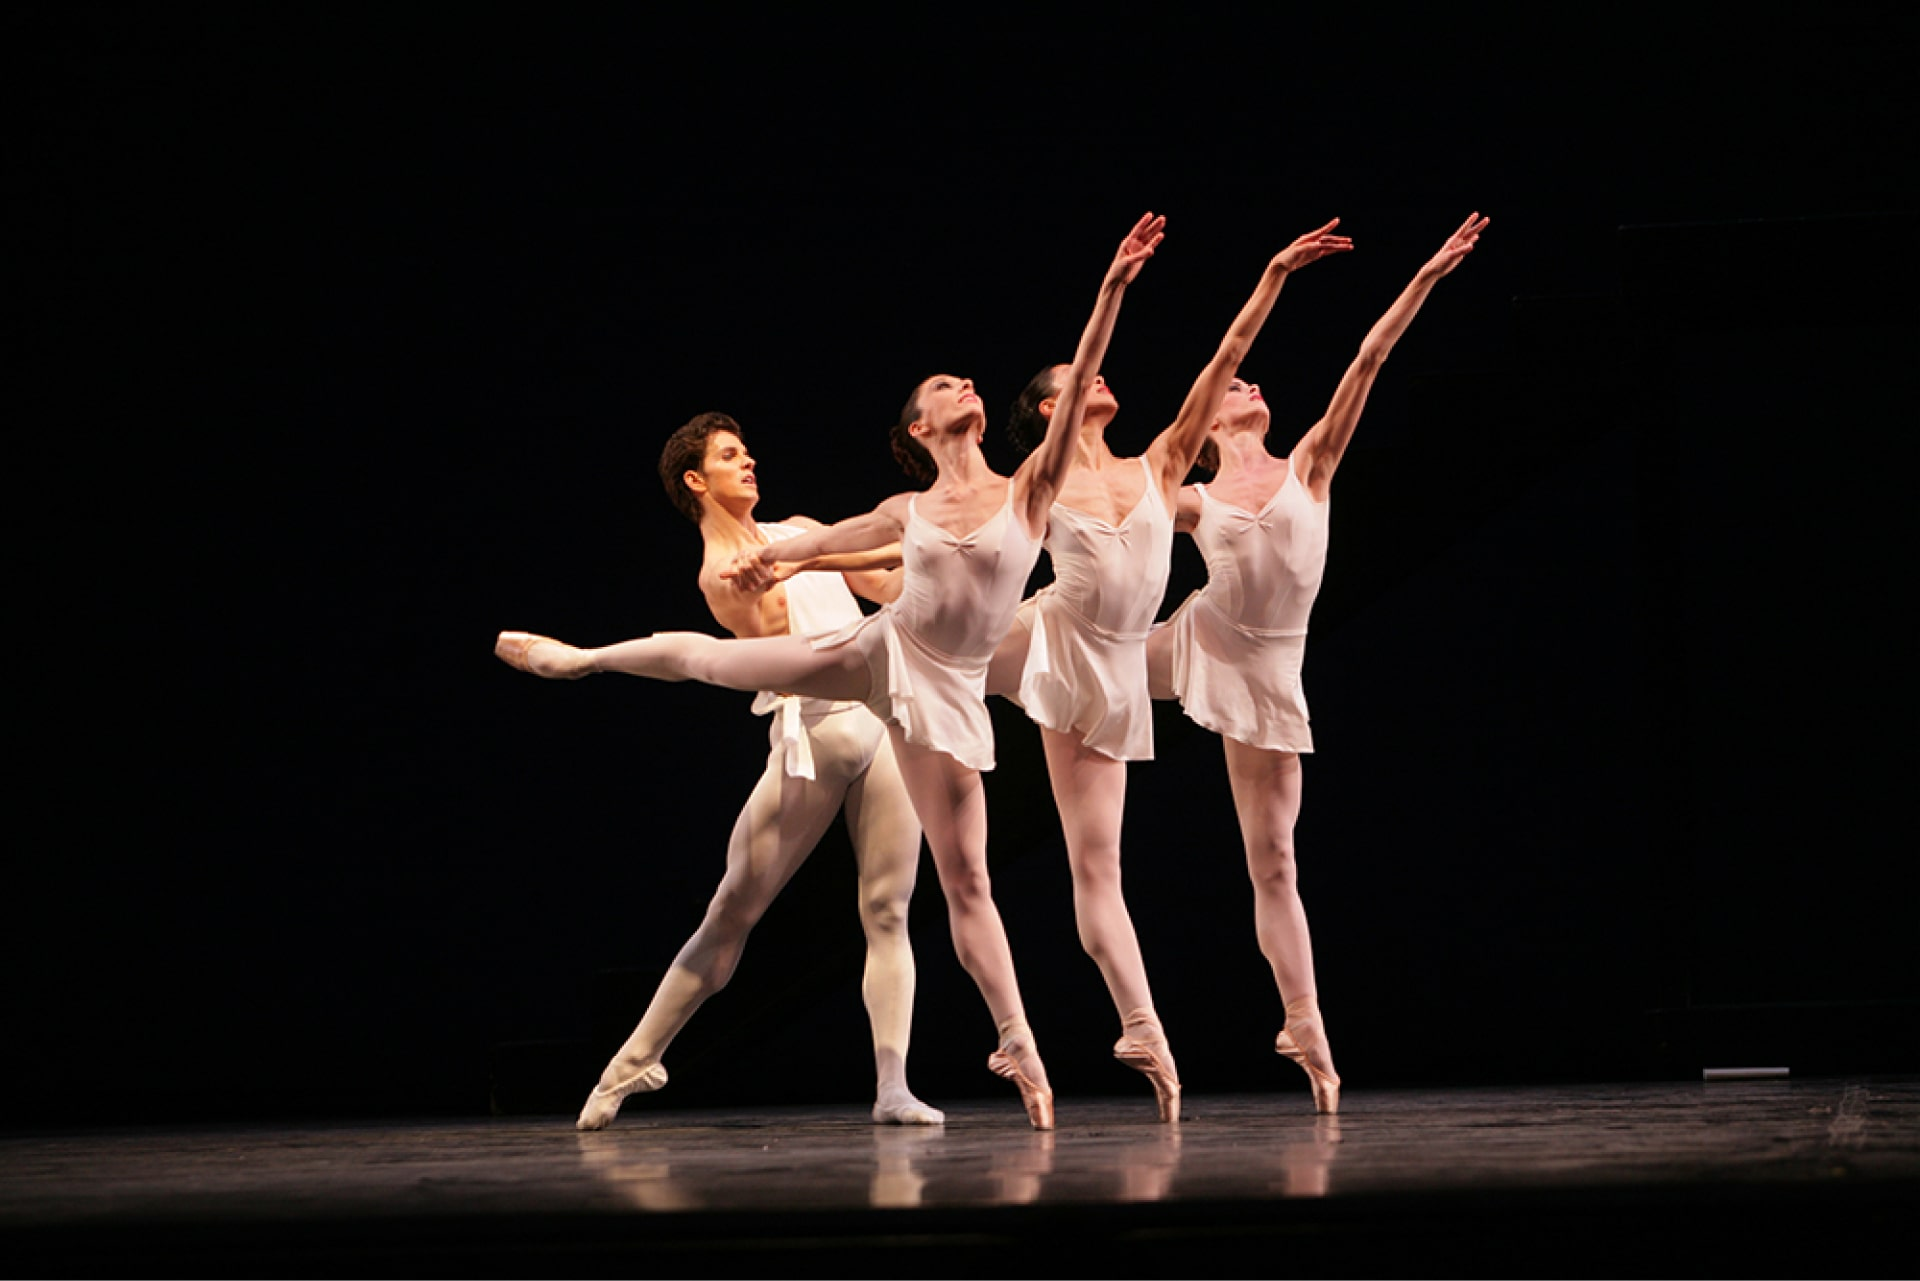 Bare-chested dancers hold hands of three ballerinas on point in arabesque.